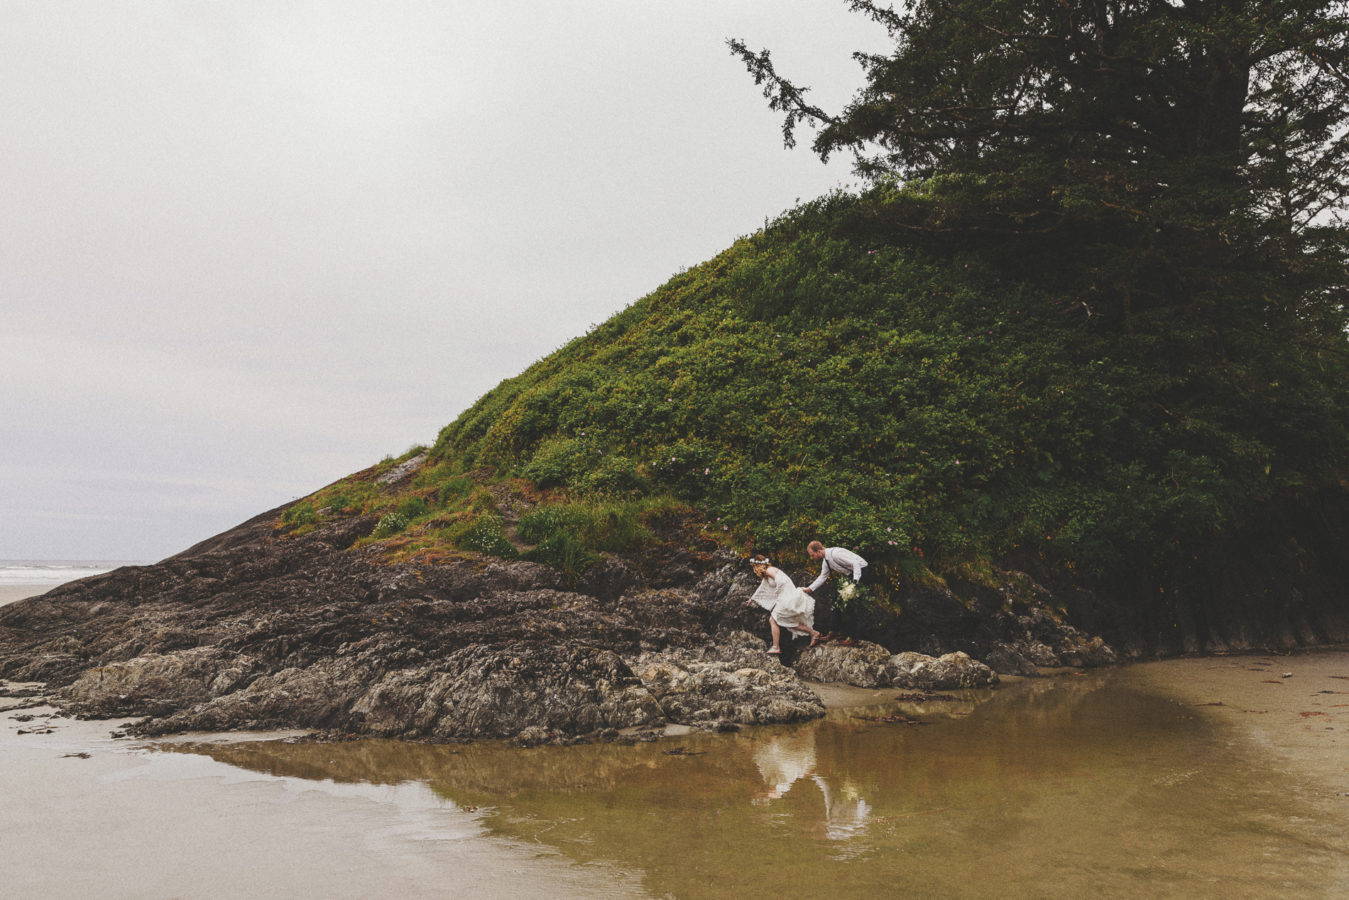 bride and groom clambering on a rocky bluff at the ocean's edge with their refection in the still water below them